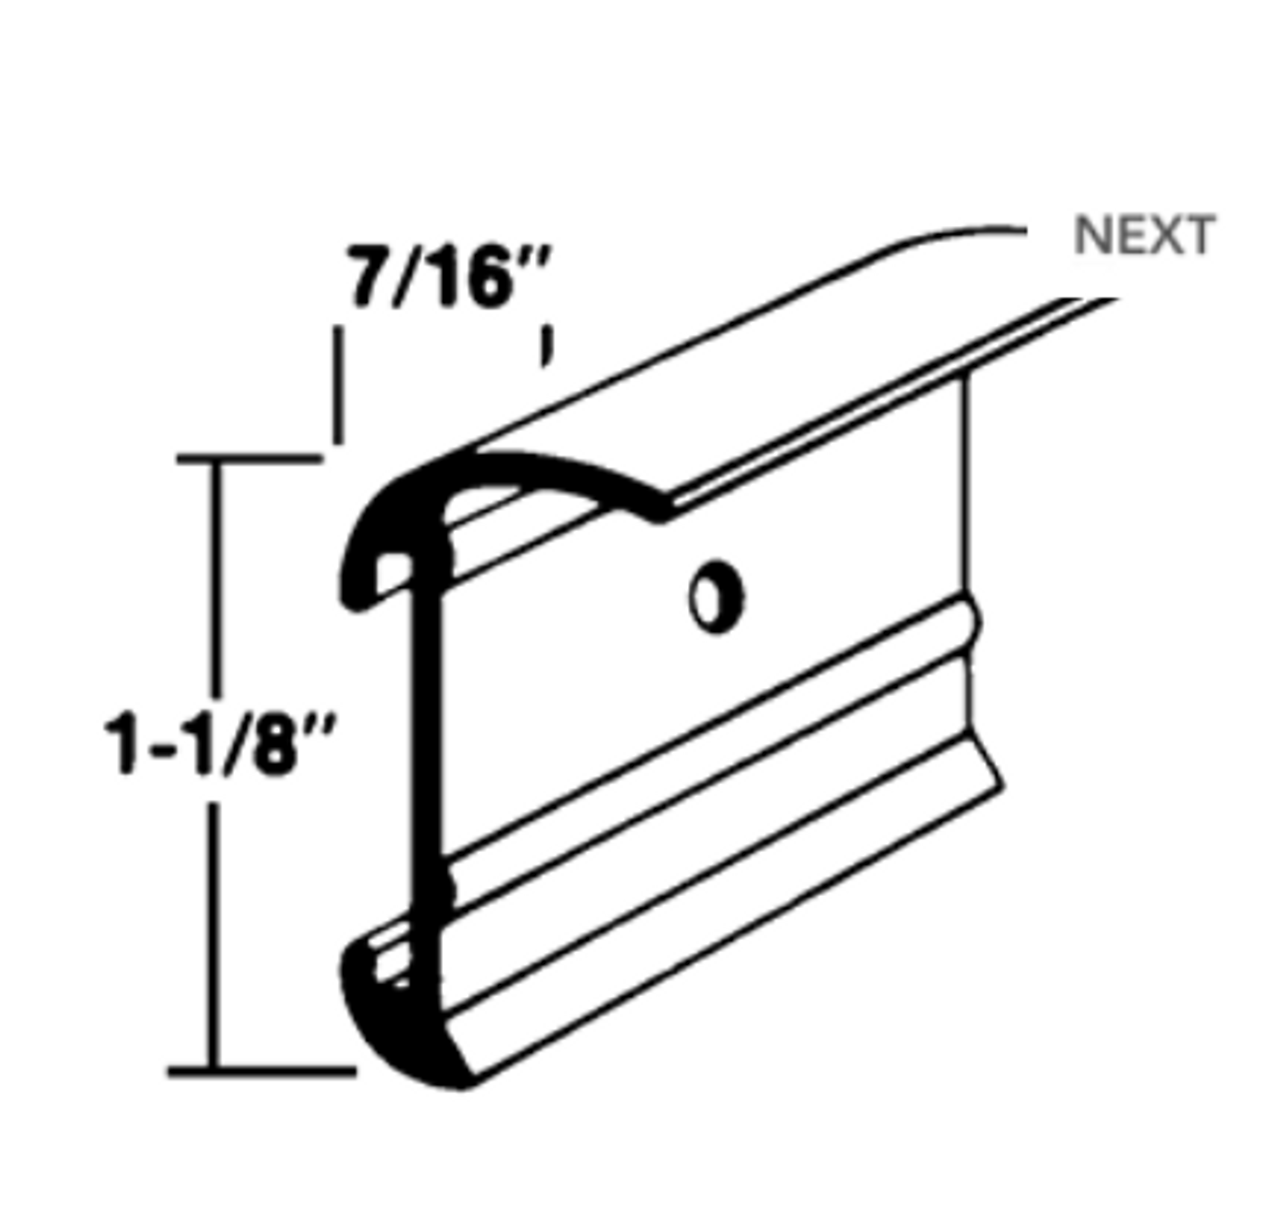 CORNER TRIM ALUMINUM with INSERT TRIM TRACK - 14' (20-1096)